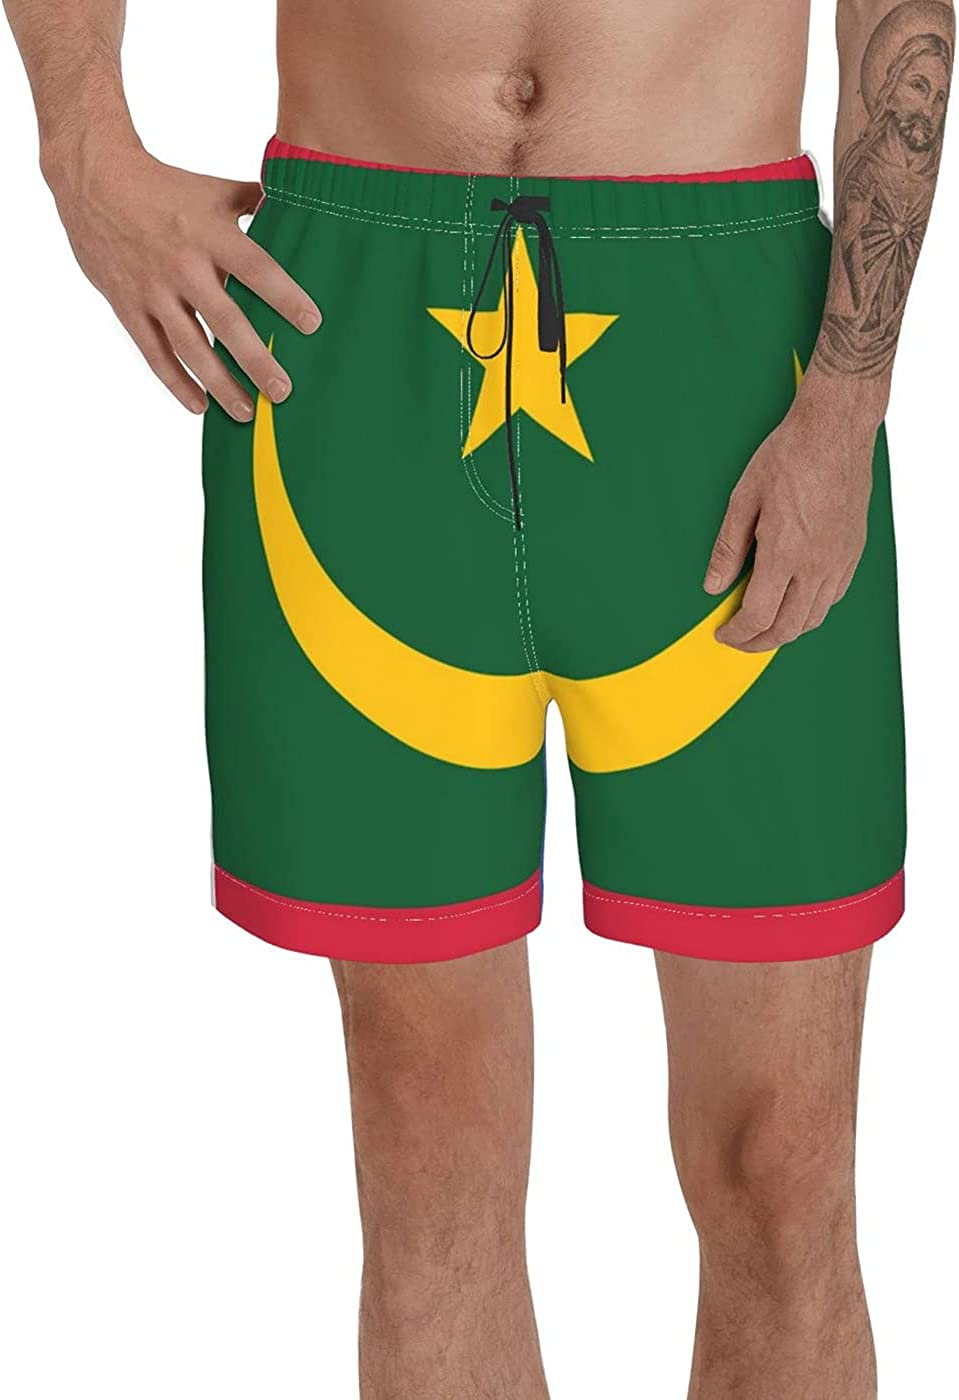 Count Mauritania Flag Men's 3D Printed Funny Summer Quick Dry Swim Short Board Shorts with